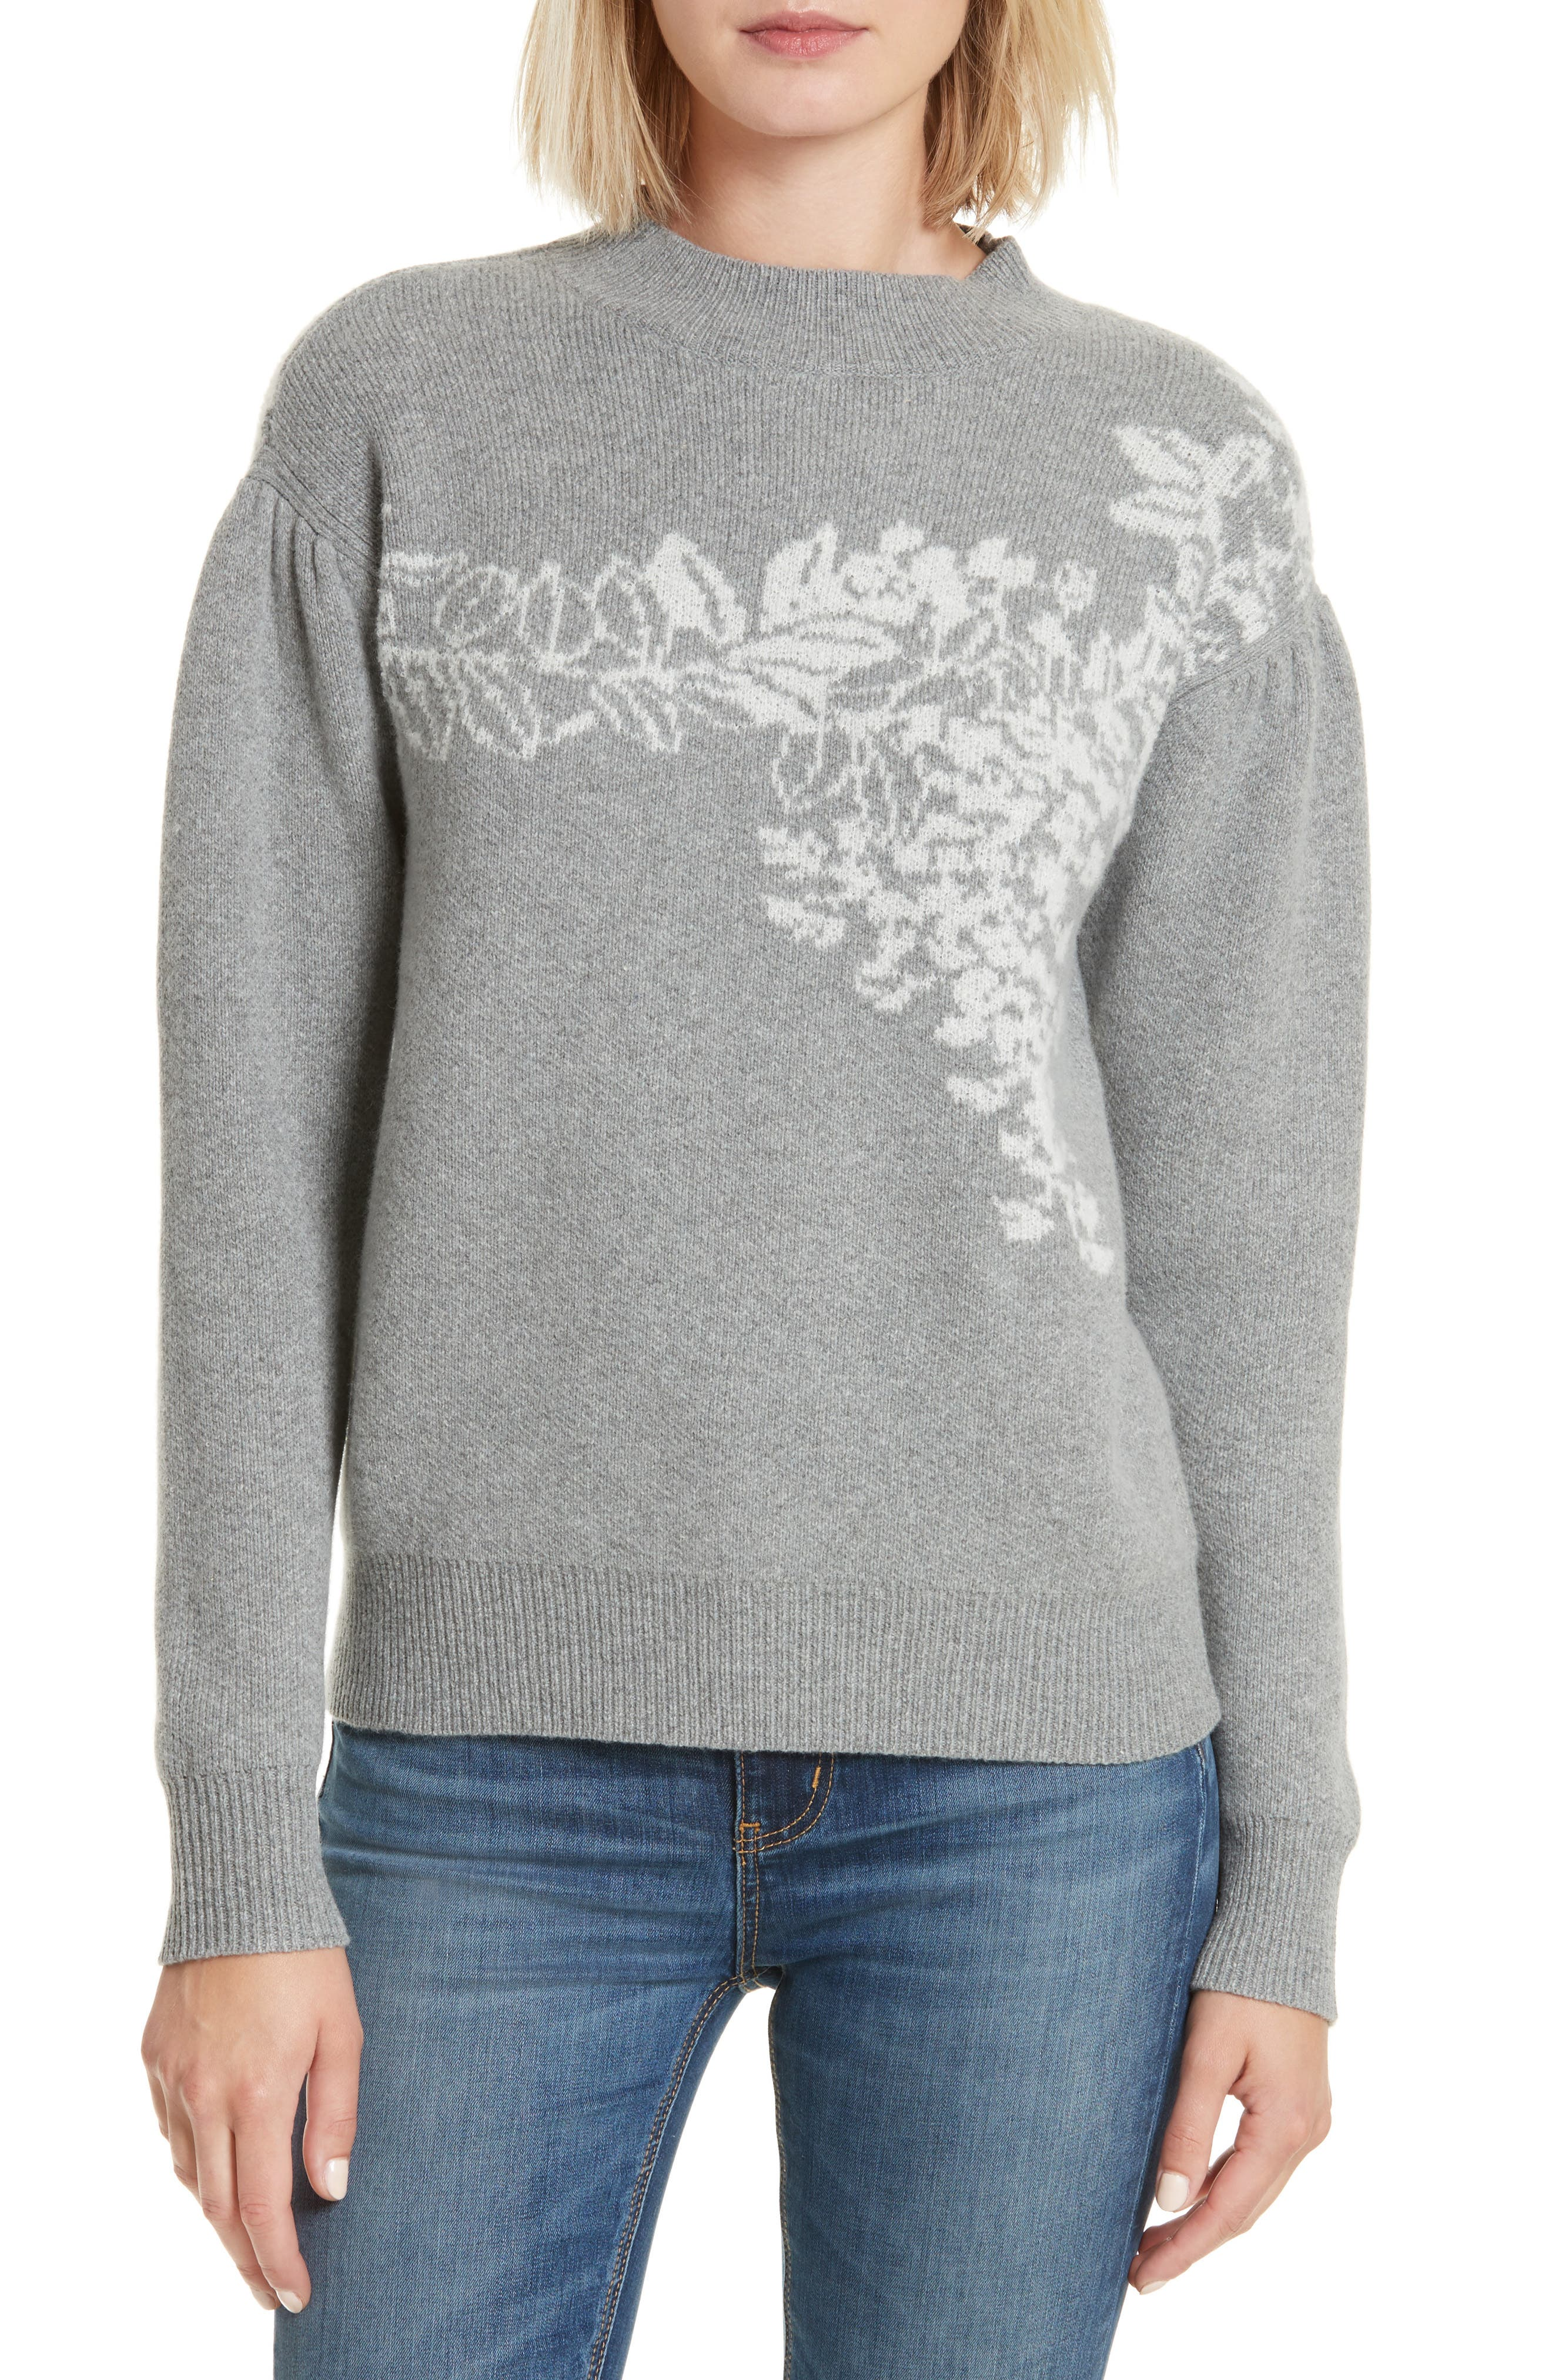 Main Image - Rebecca Taylor Jacquard Floral Pullover